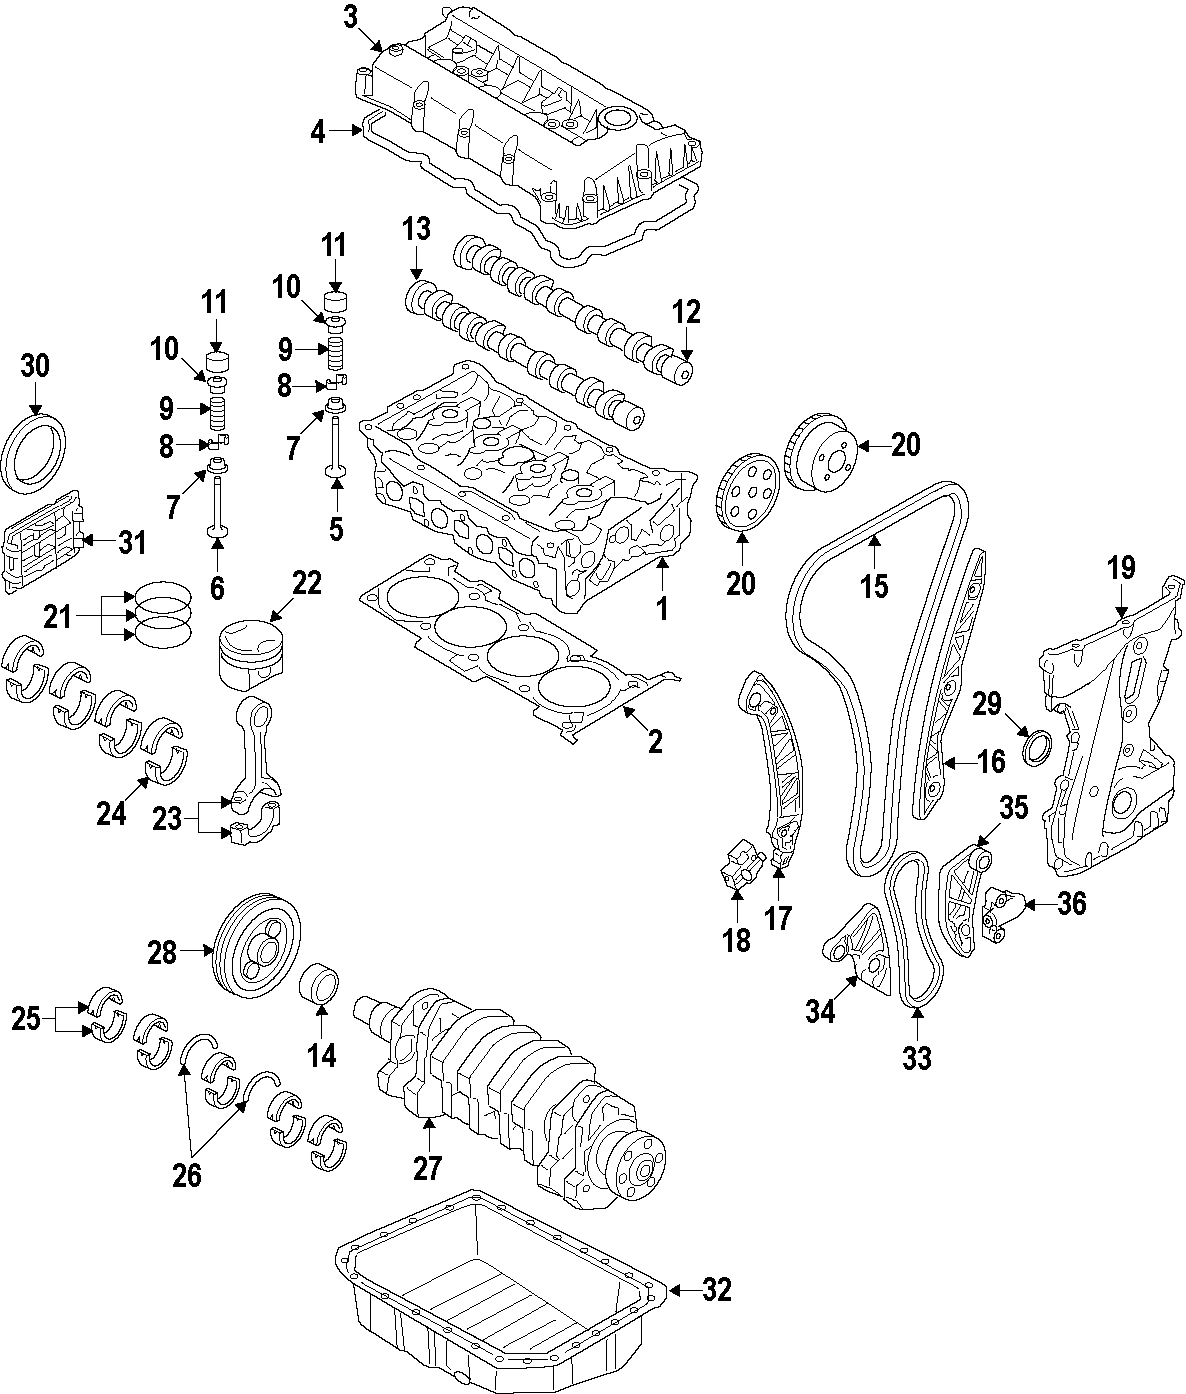 2014 Kia Optima Engine Timing Chain. LITER, Cam, Crank